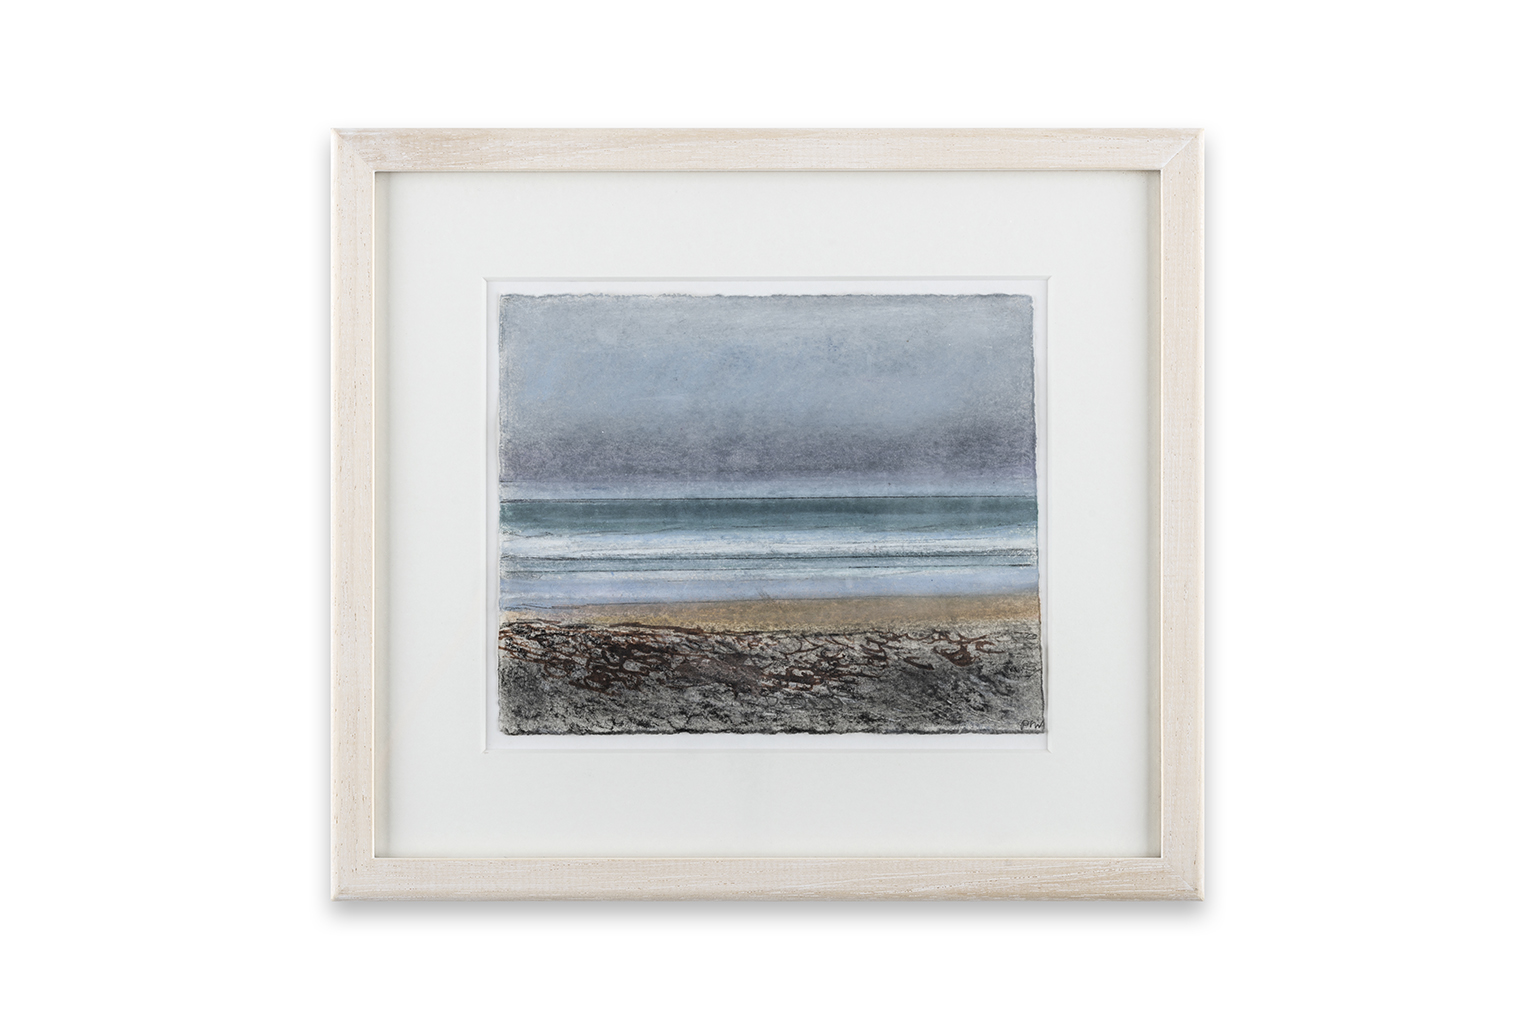 60 Winter on the Beach, 9 x 15 cm, pastel and mixed media on paper